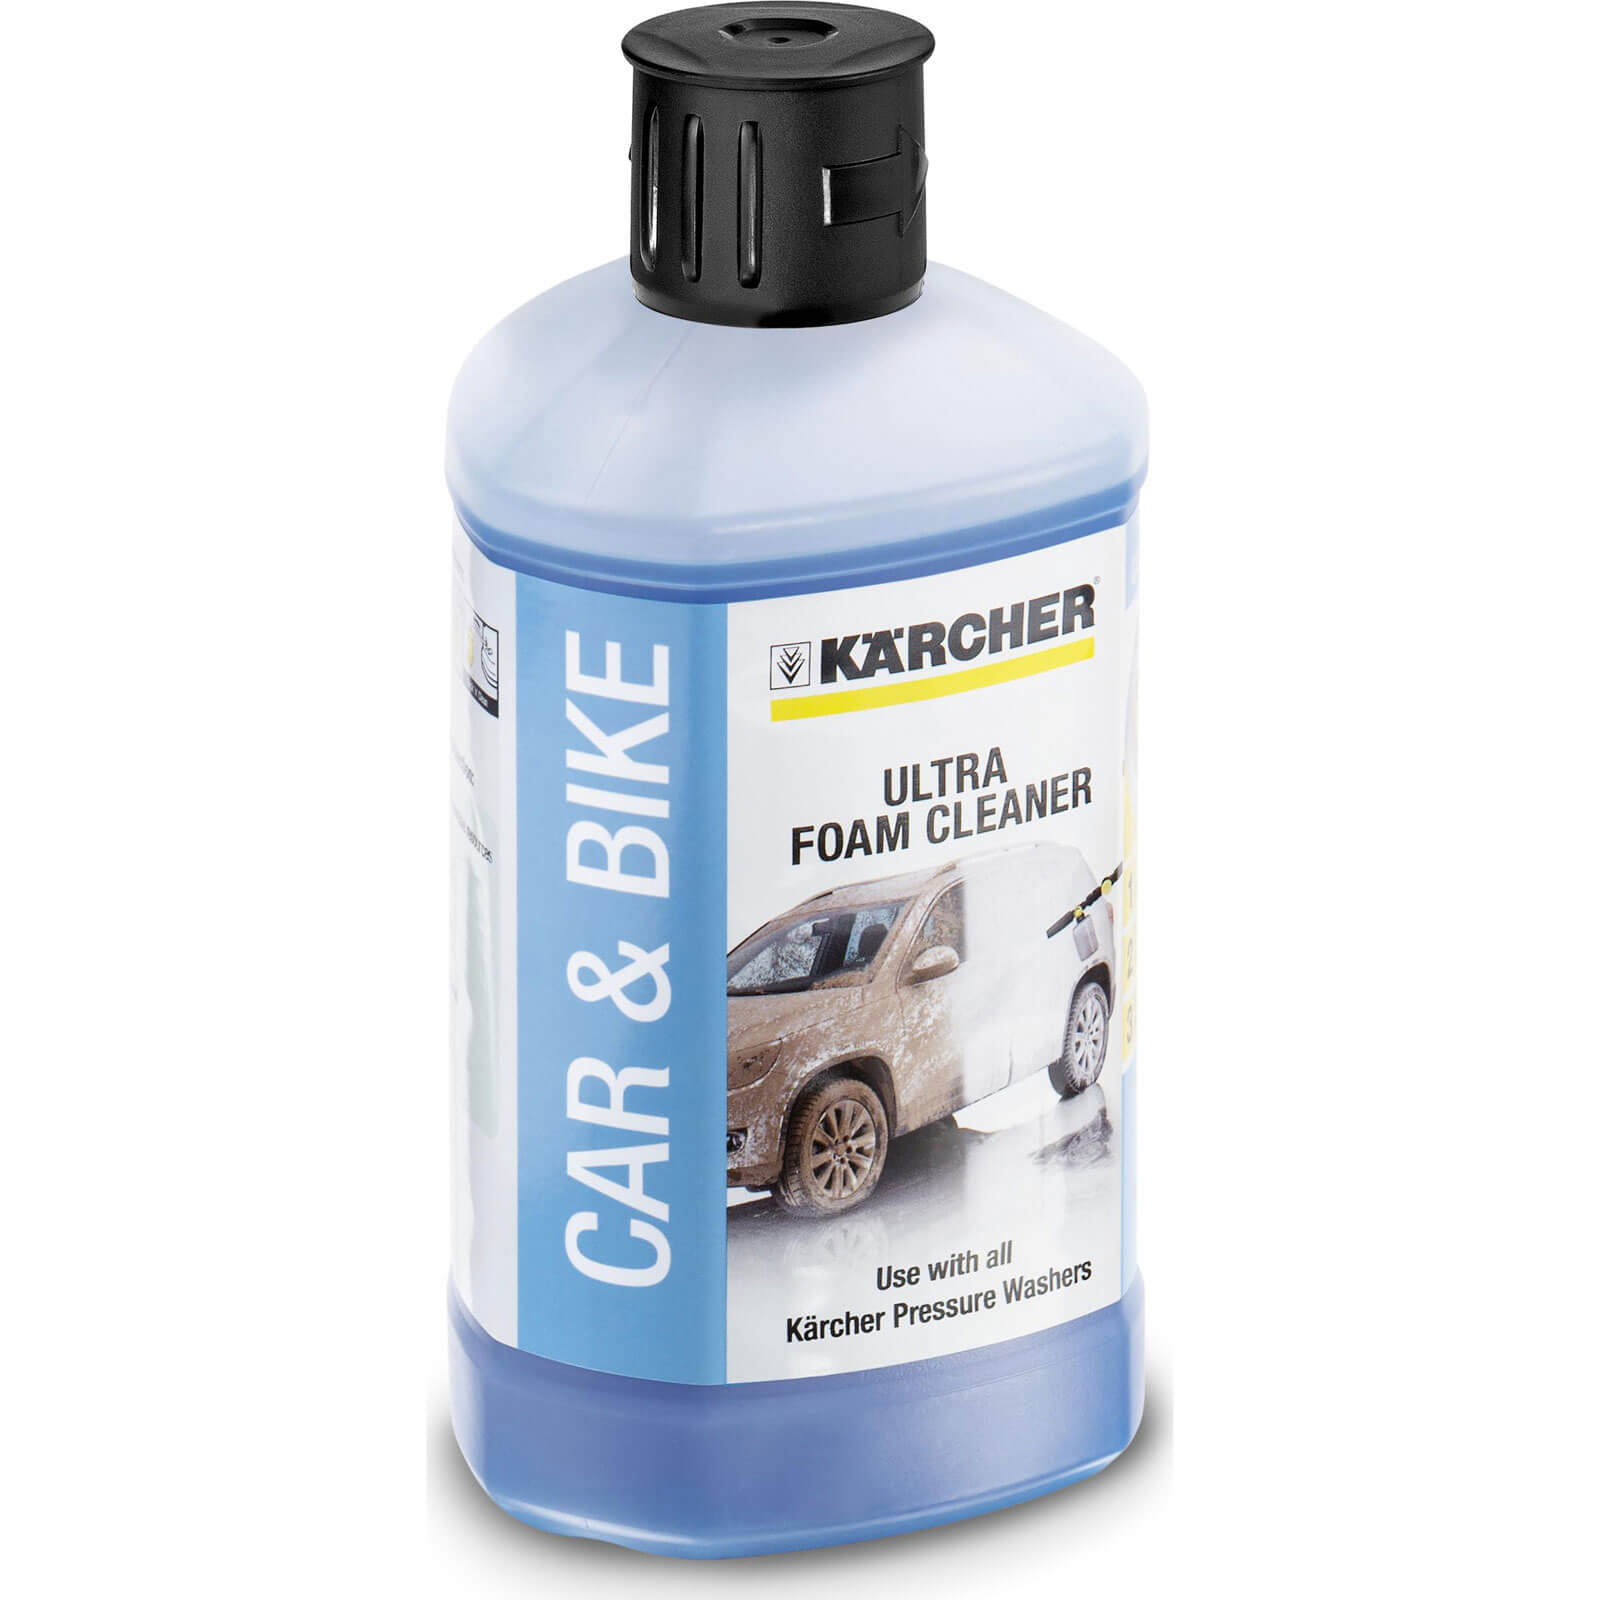 Karcher Ultra Foam Cleaner Detergent 1 Litre for Pressure Washers with Foam Nozzle